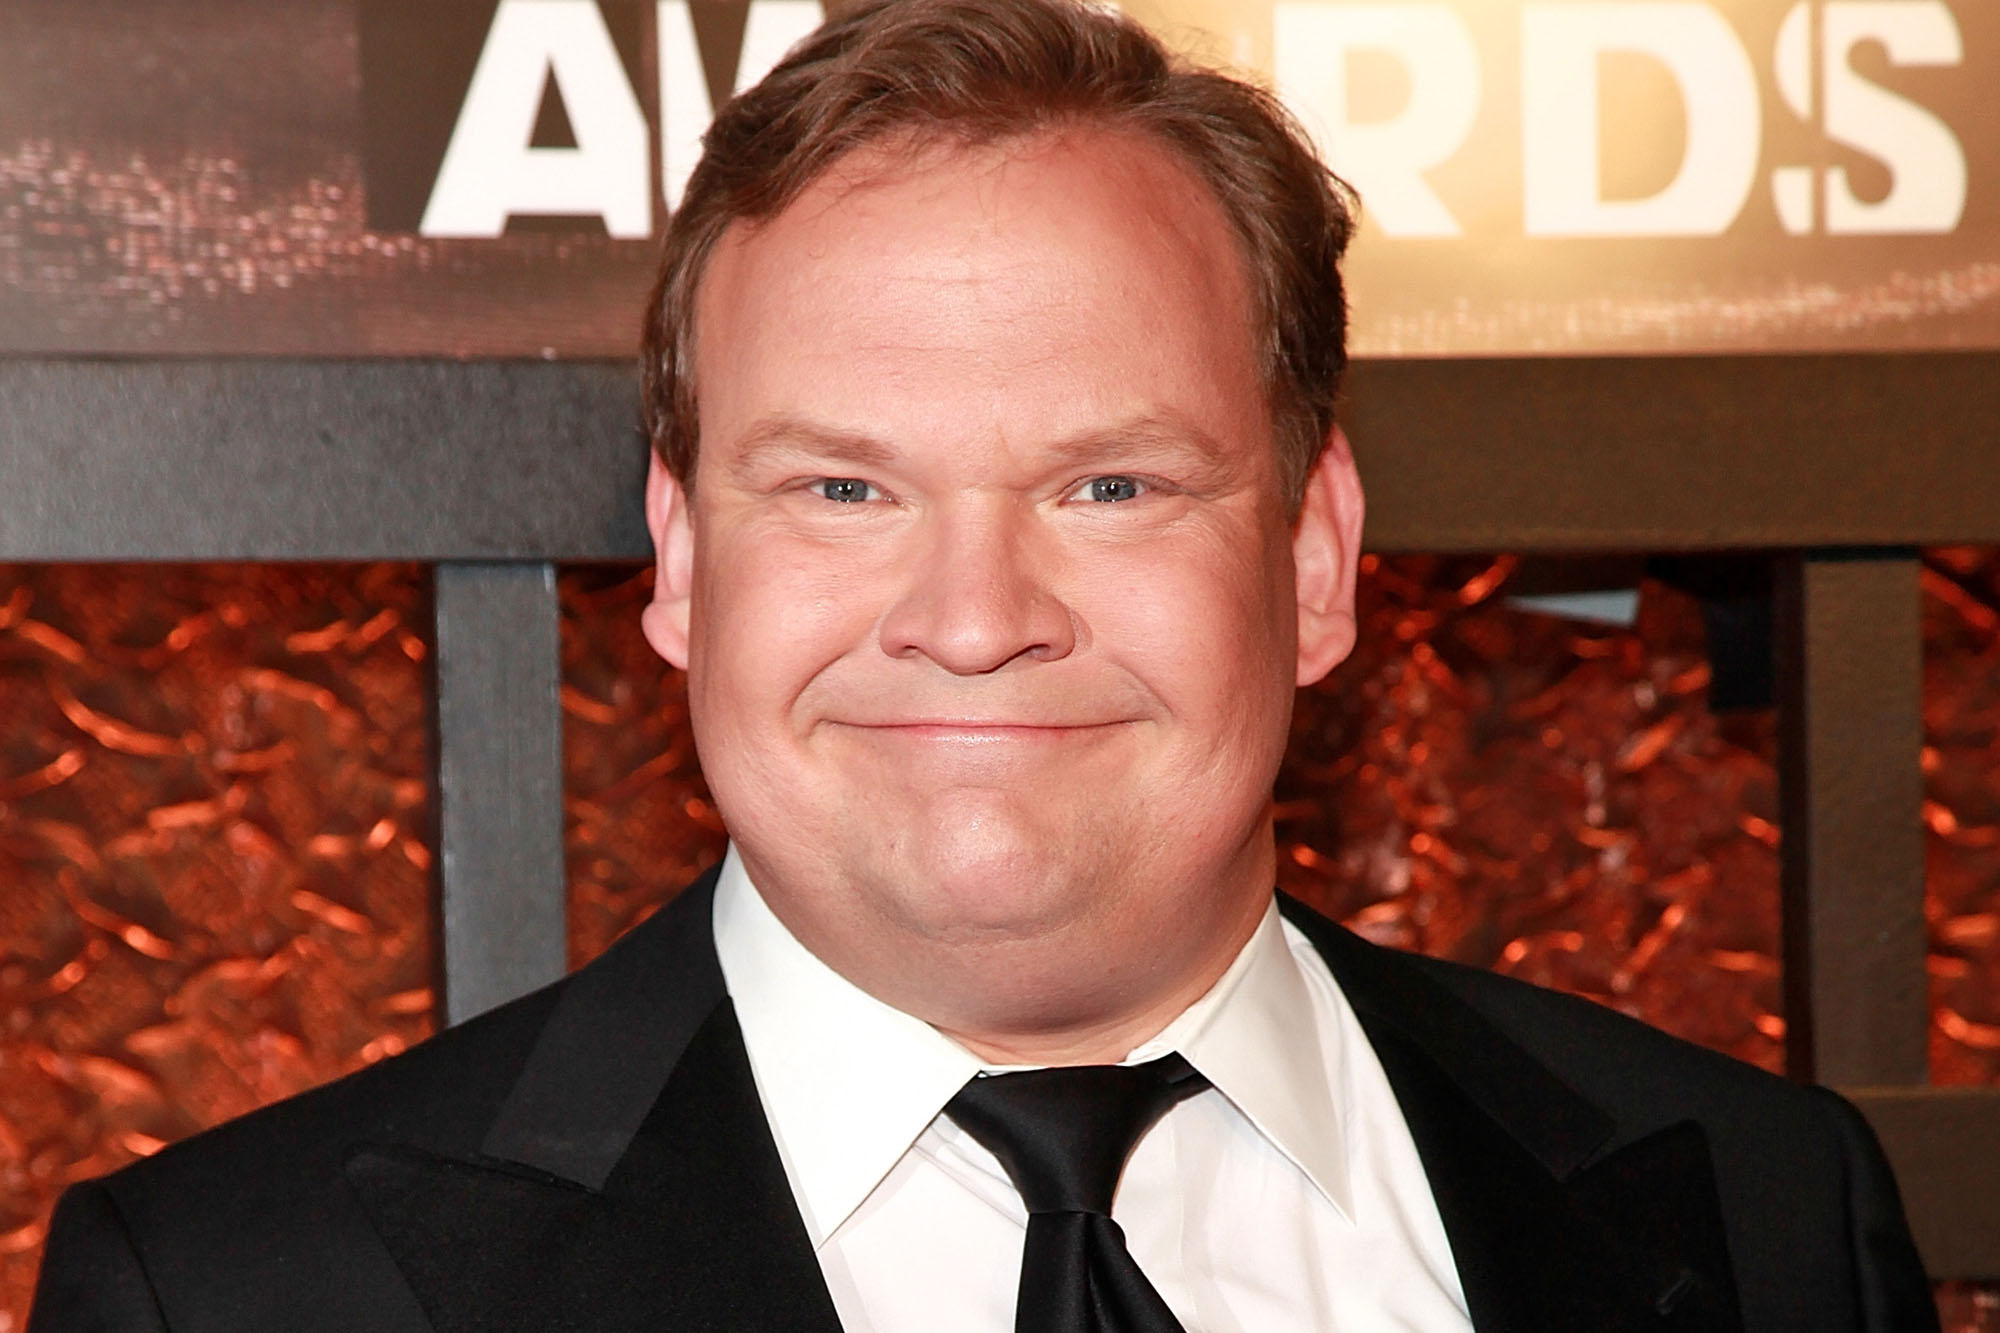 Things to know about Andy Richter